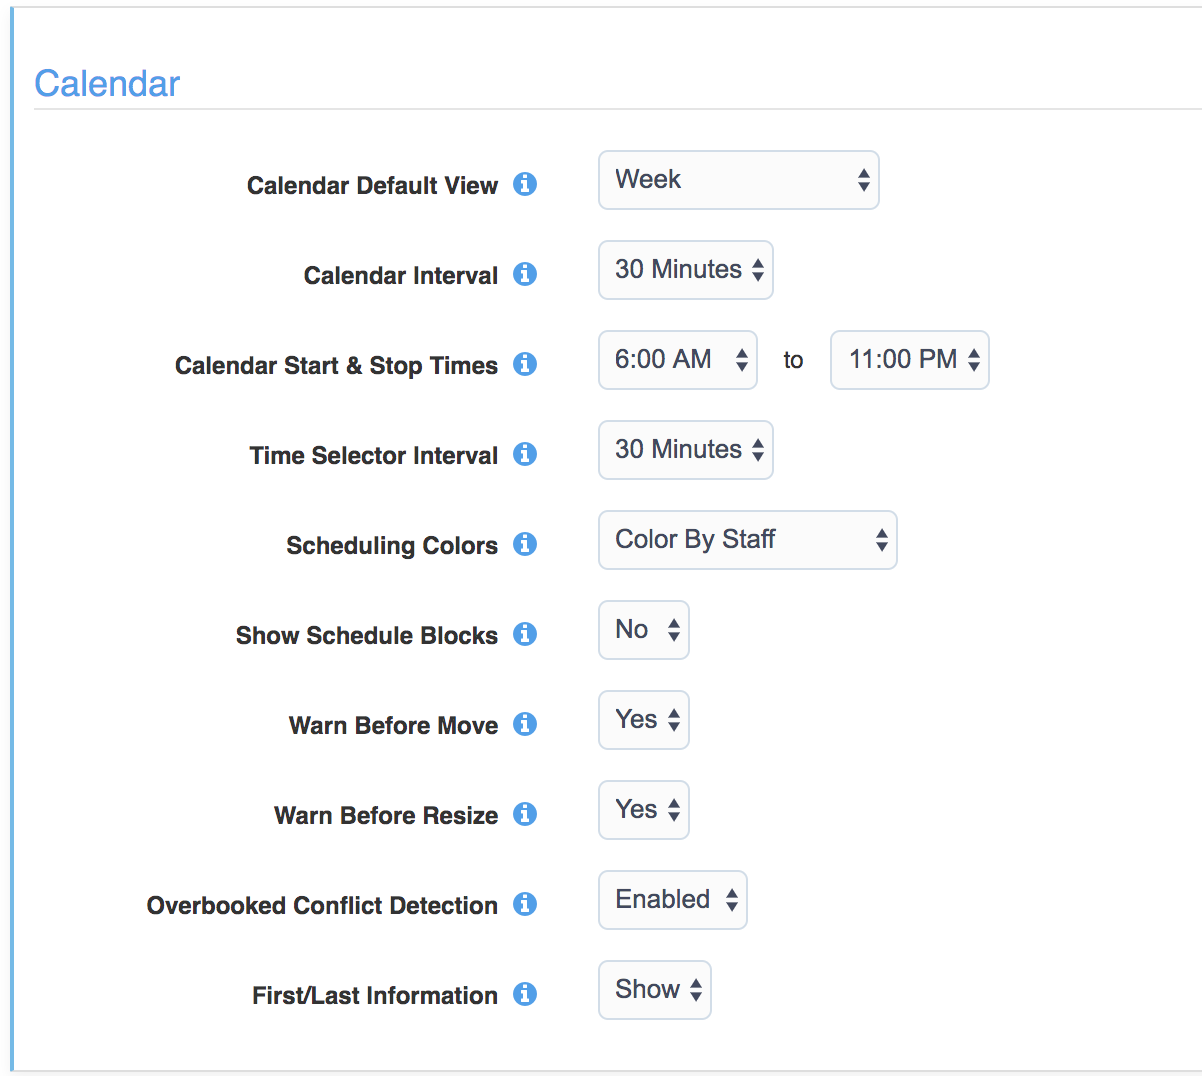 Scheduler Settings - Configure the calendar